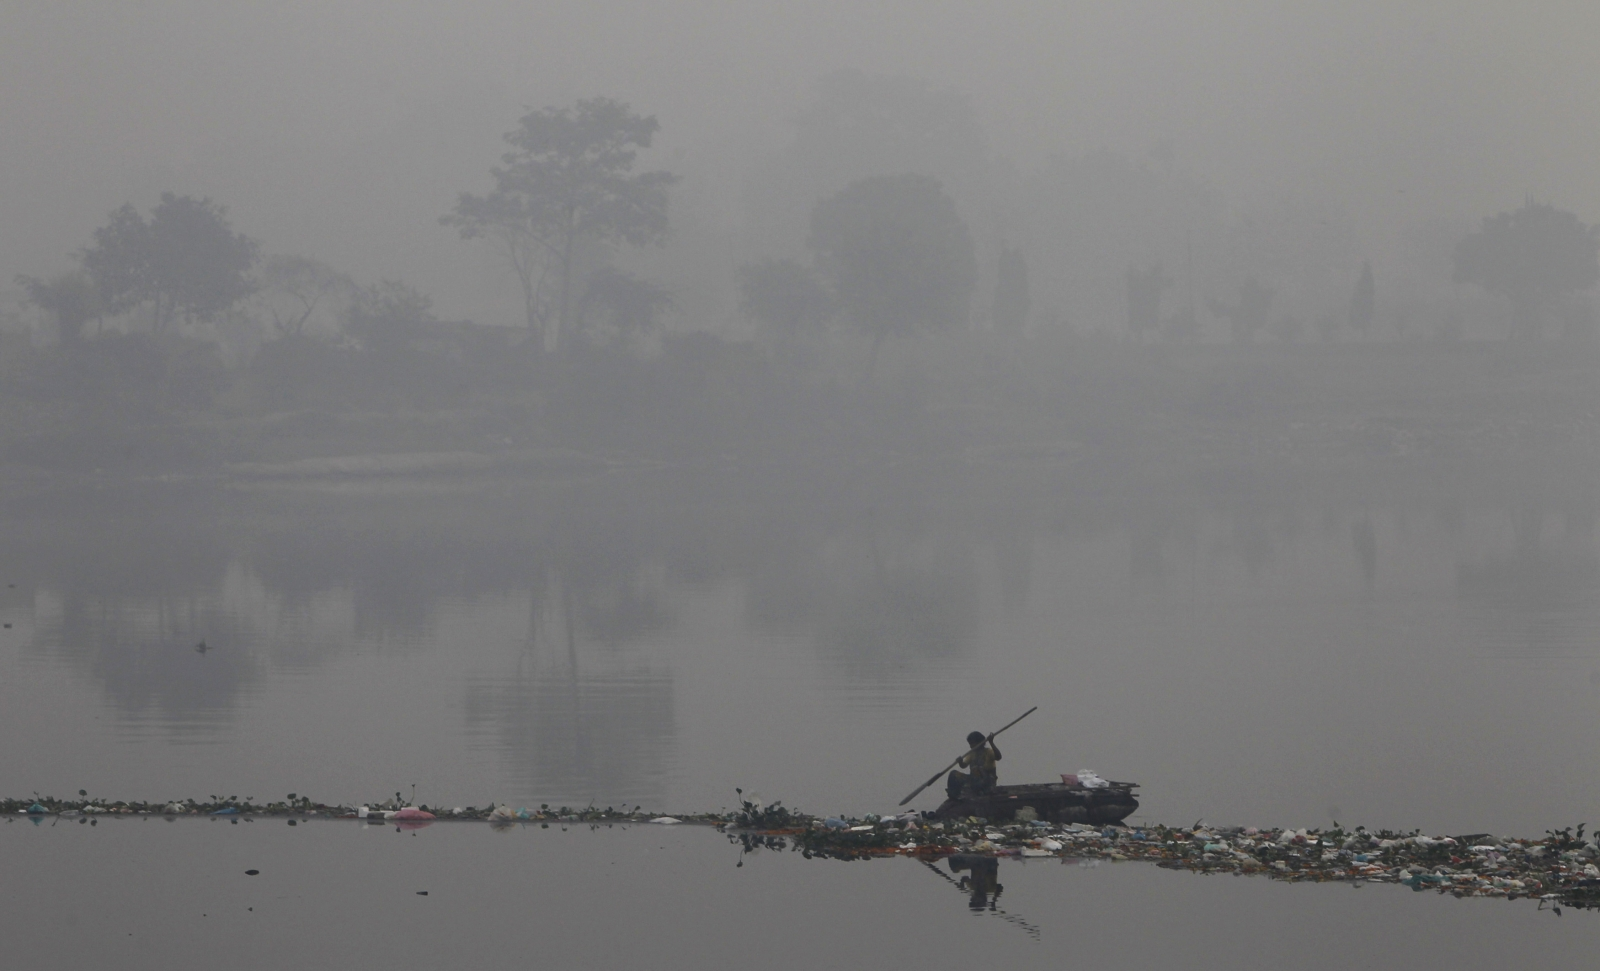 A rag picker collects recyclable materials in the polluted waters of river Yamuna amid dense smog in Delhi.